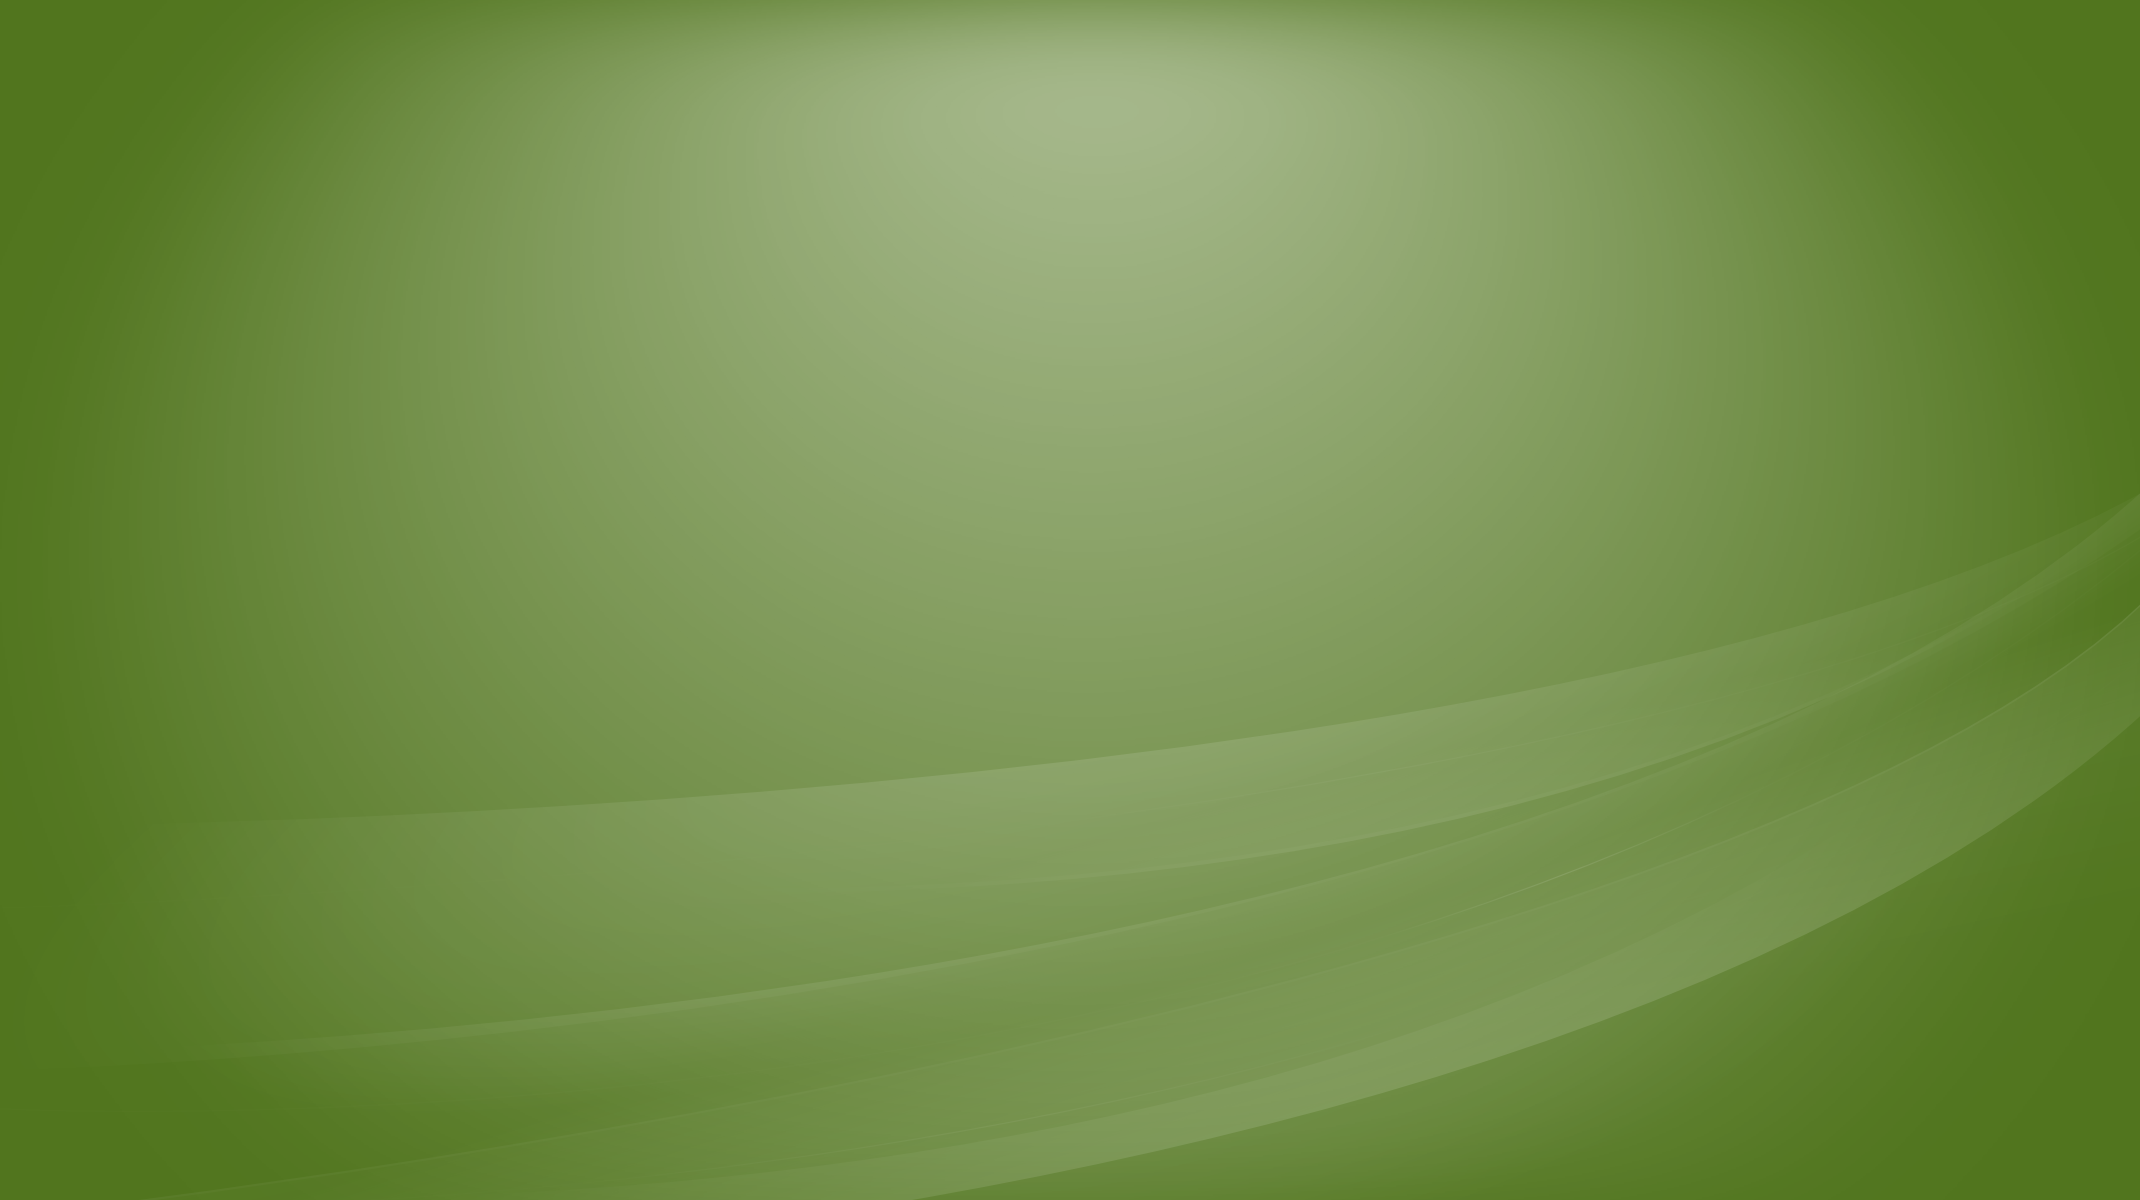 Linux Mint wallpapers Lisa Edition HD Wallpapers 2140x1200